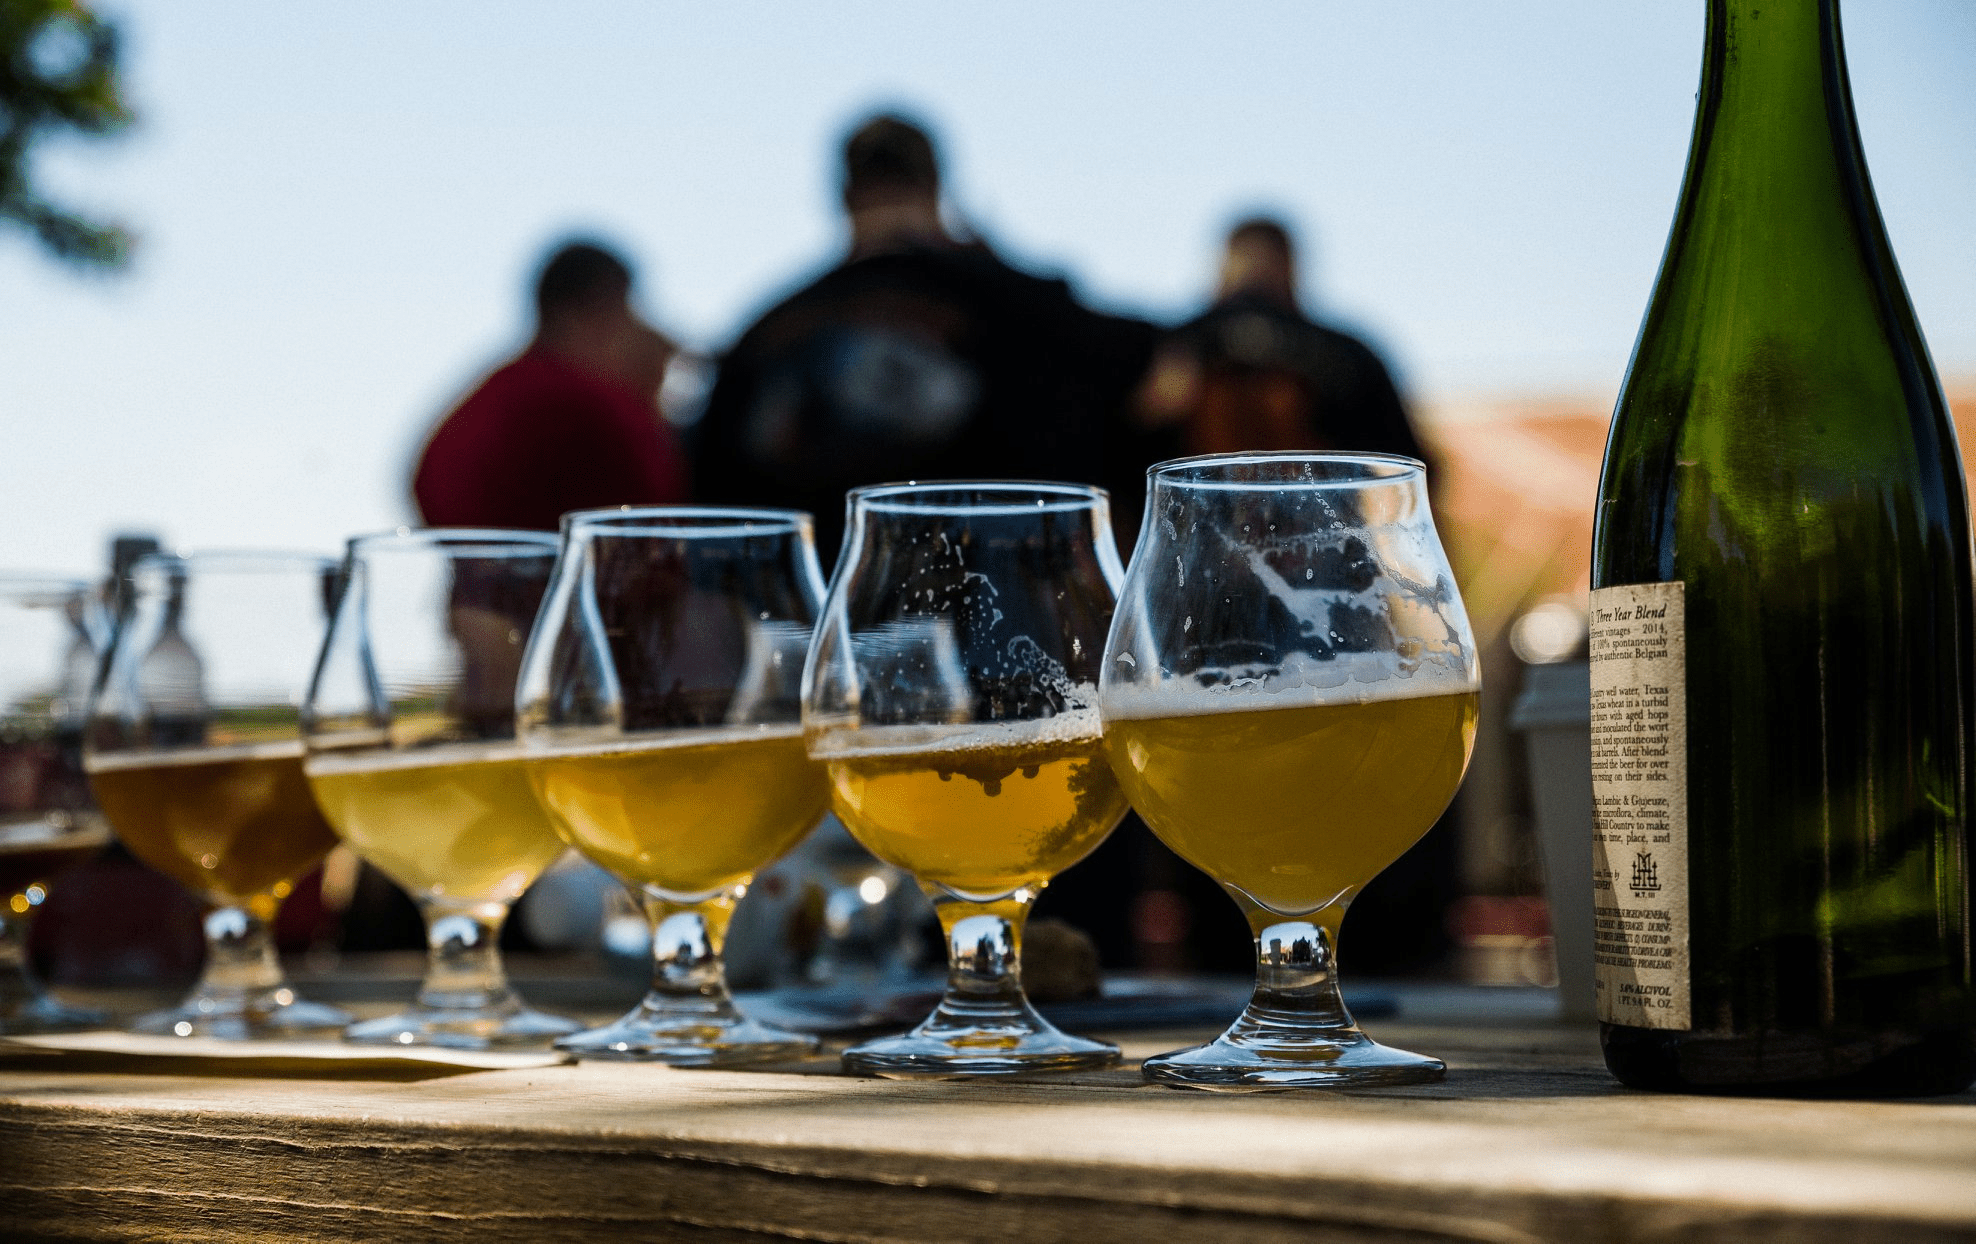 taster glasses at Jester King Brewery